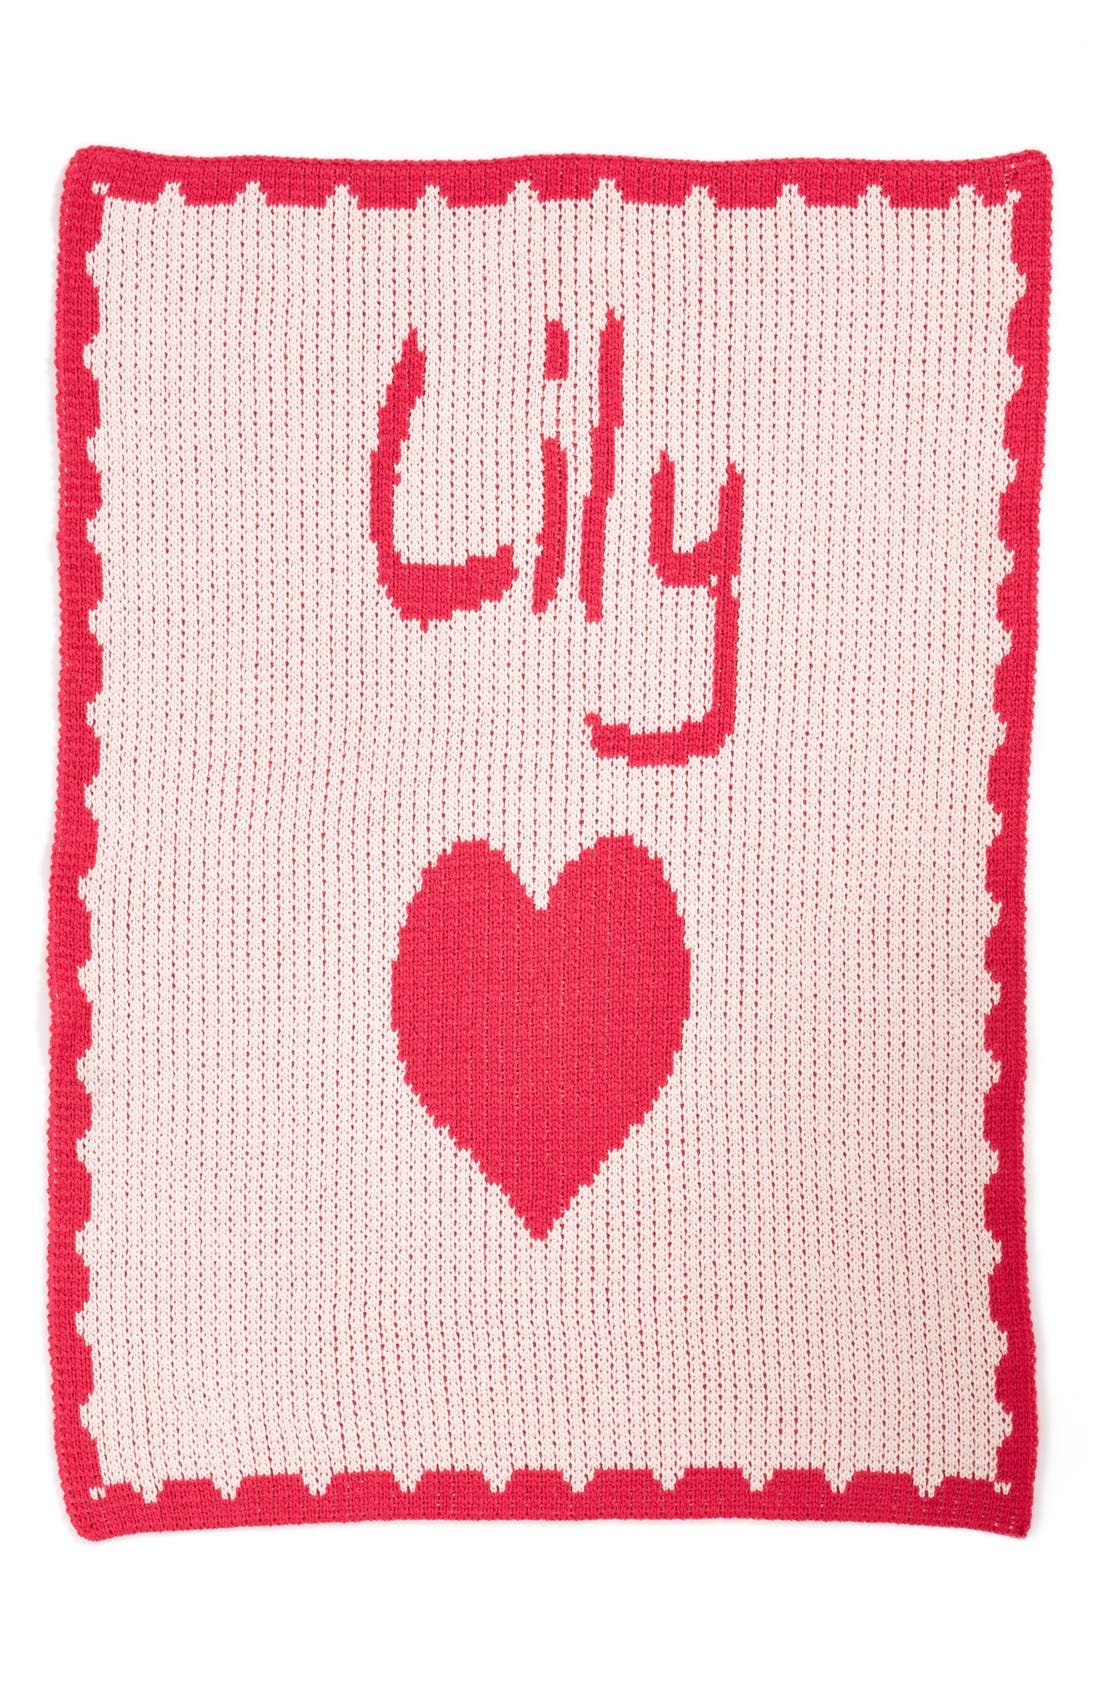 'Hearts - Small' Personalized Stroller Blanket,                         Main,                         color, Pale Pink/ Fuchsia